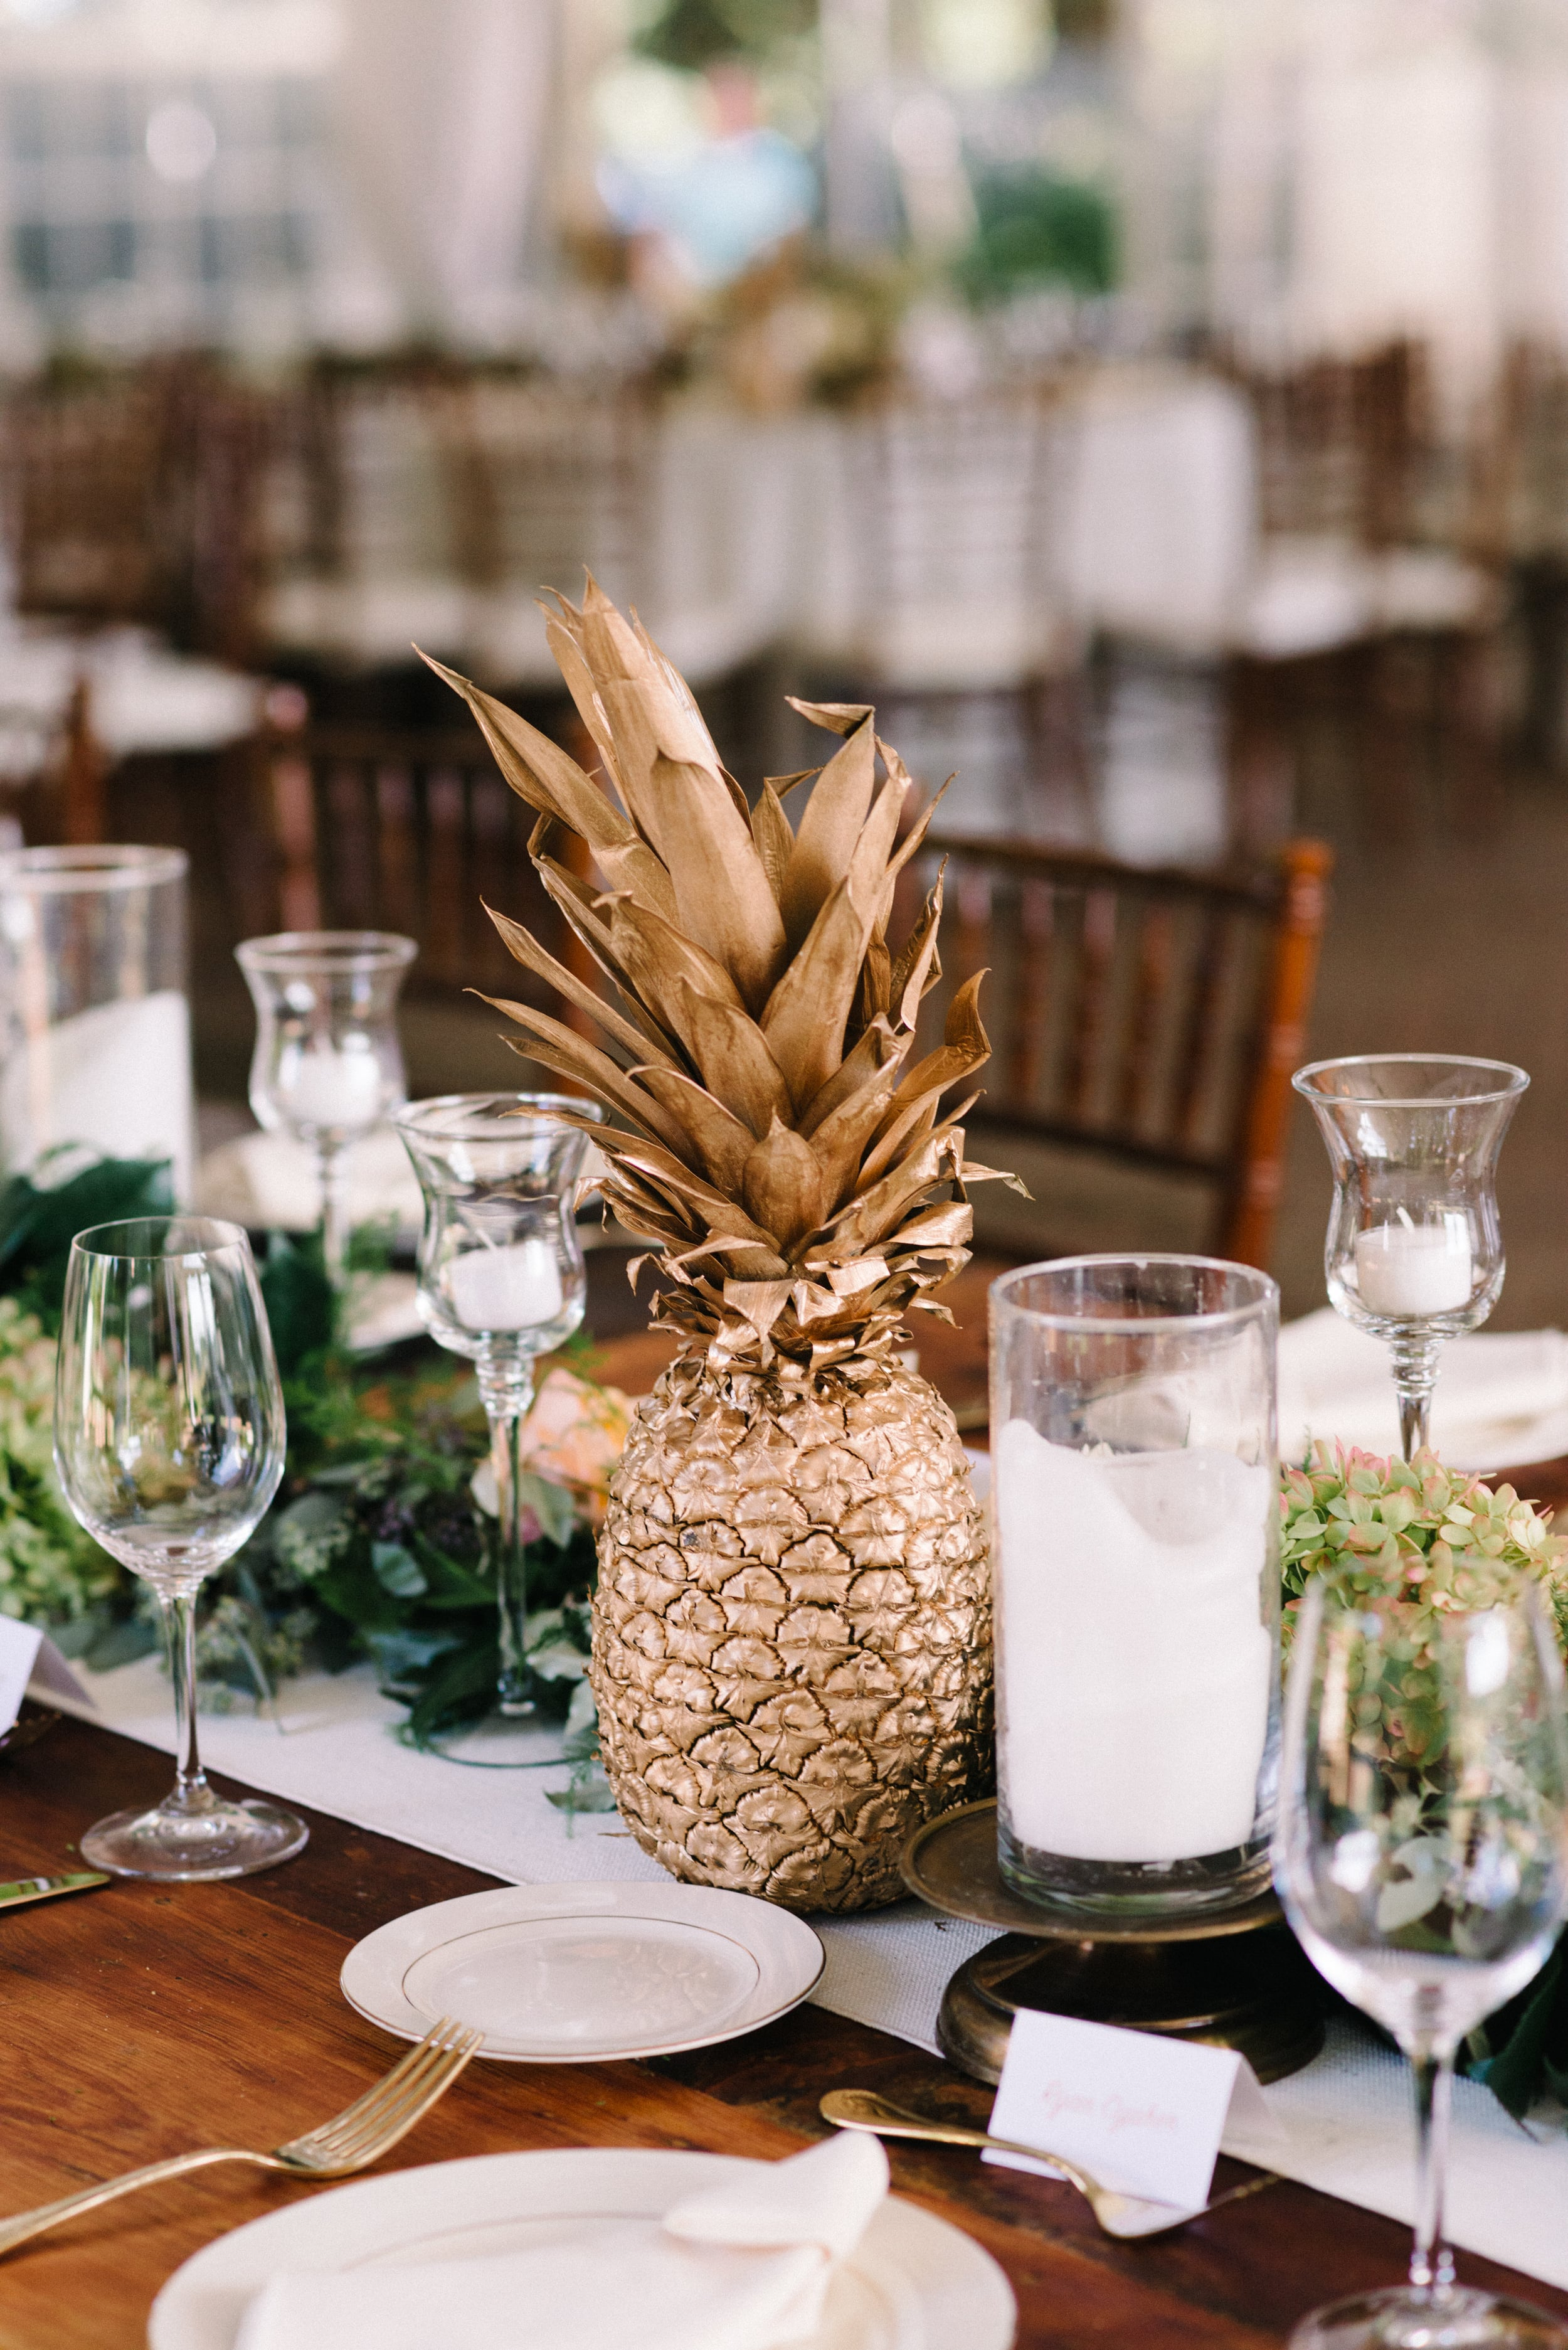 A Garden Party Florist, Inn at Fernbrook Farms, Michelle Lange Photography, Blush, Pineapple, Table Decor, Garland